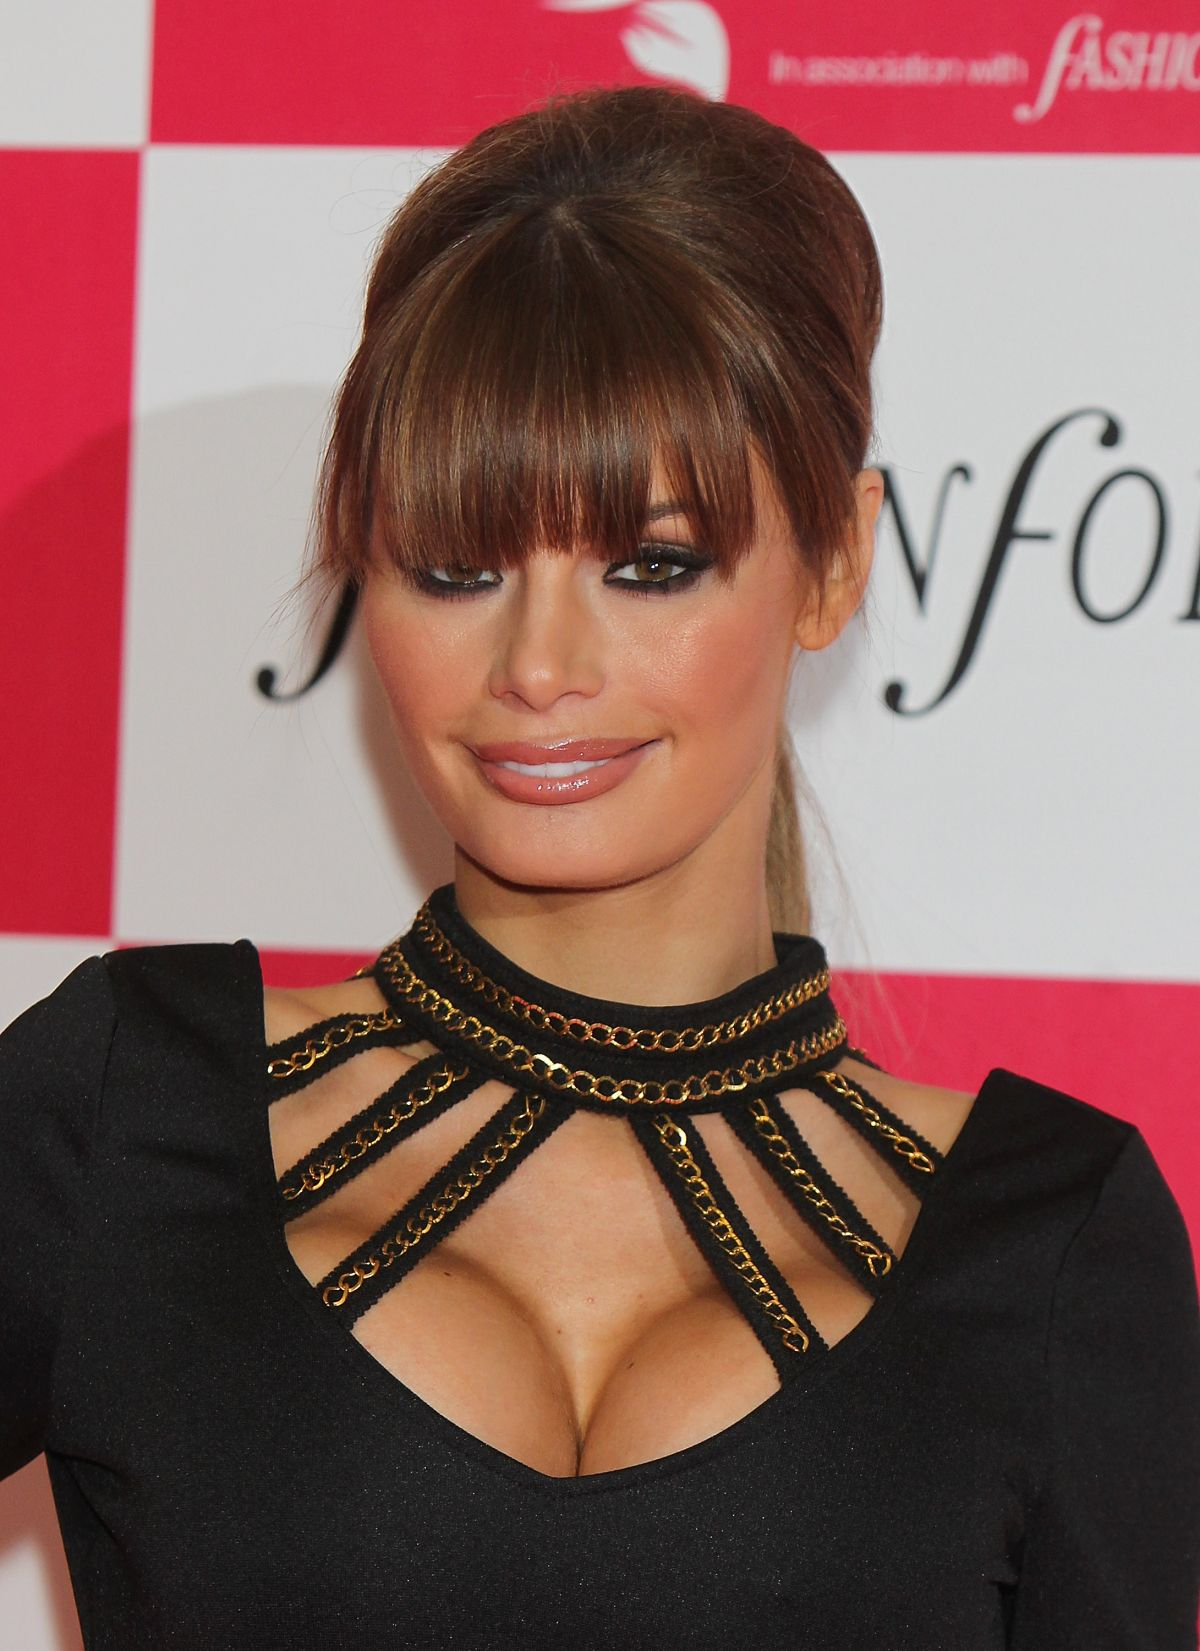 Chloe Sims earned a  million dollar salary, leaving the net worth at 1 million in 2017